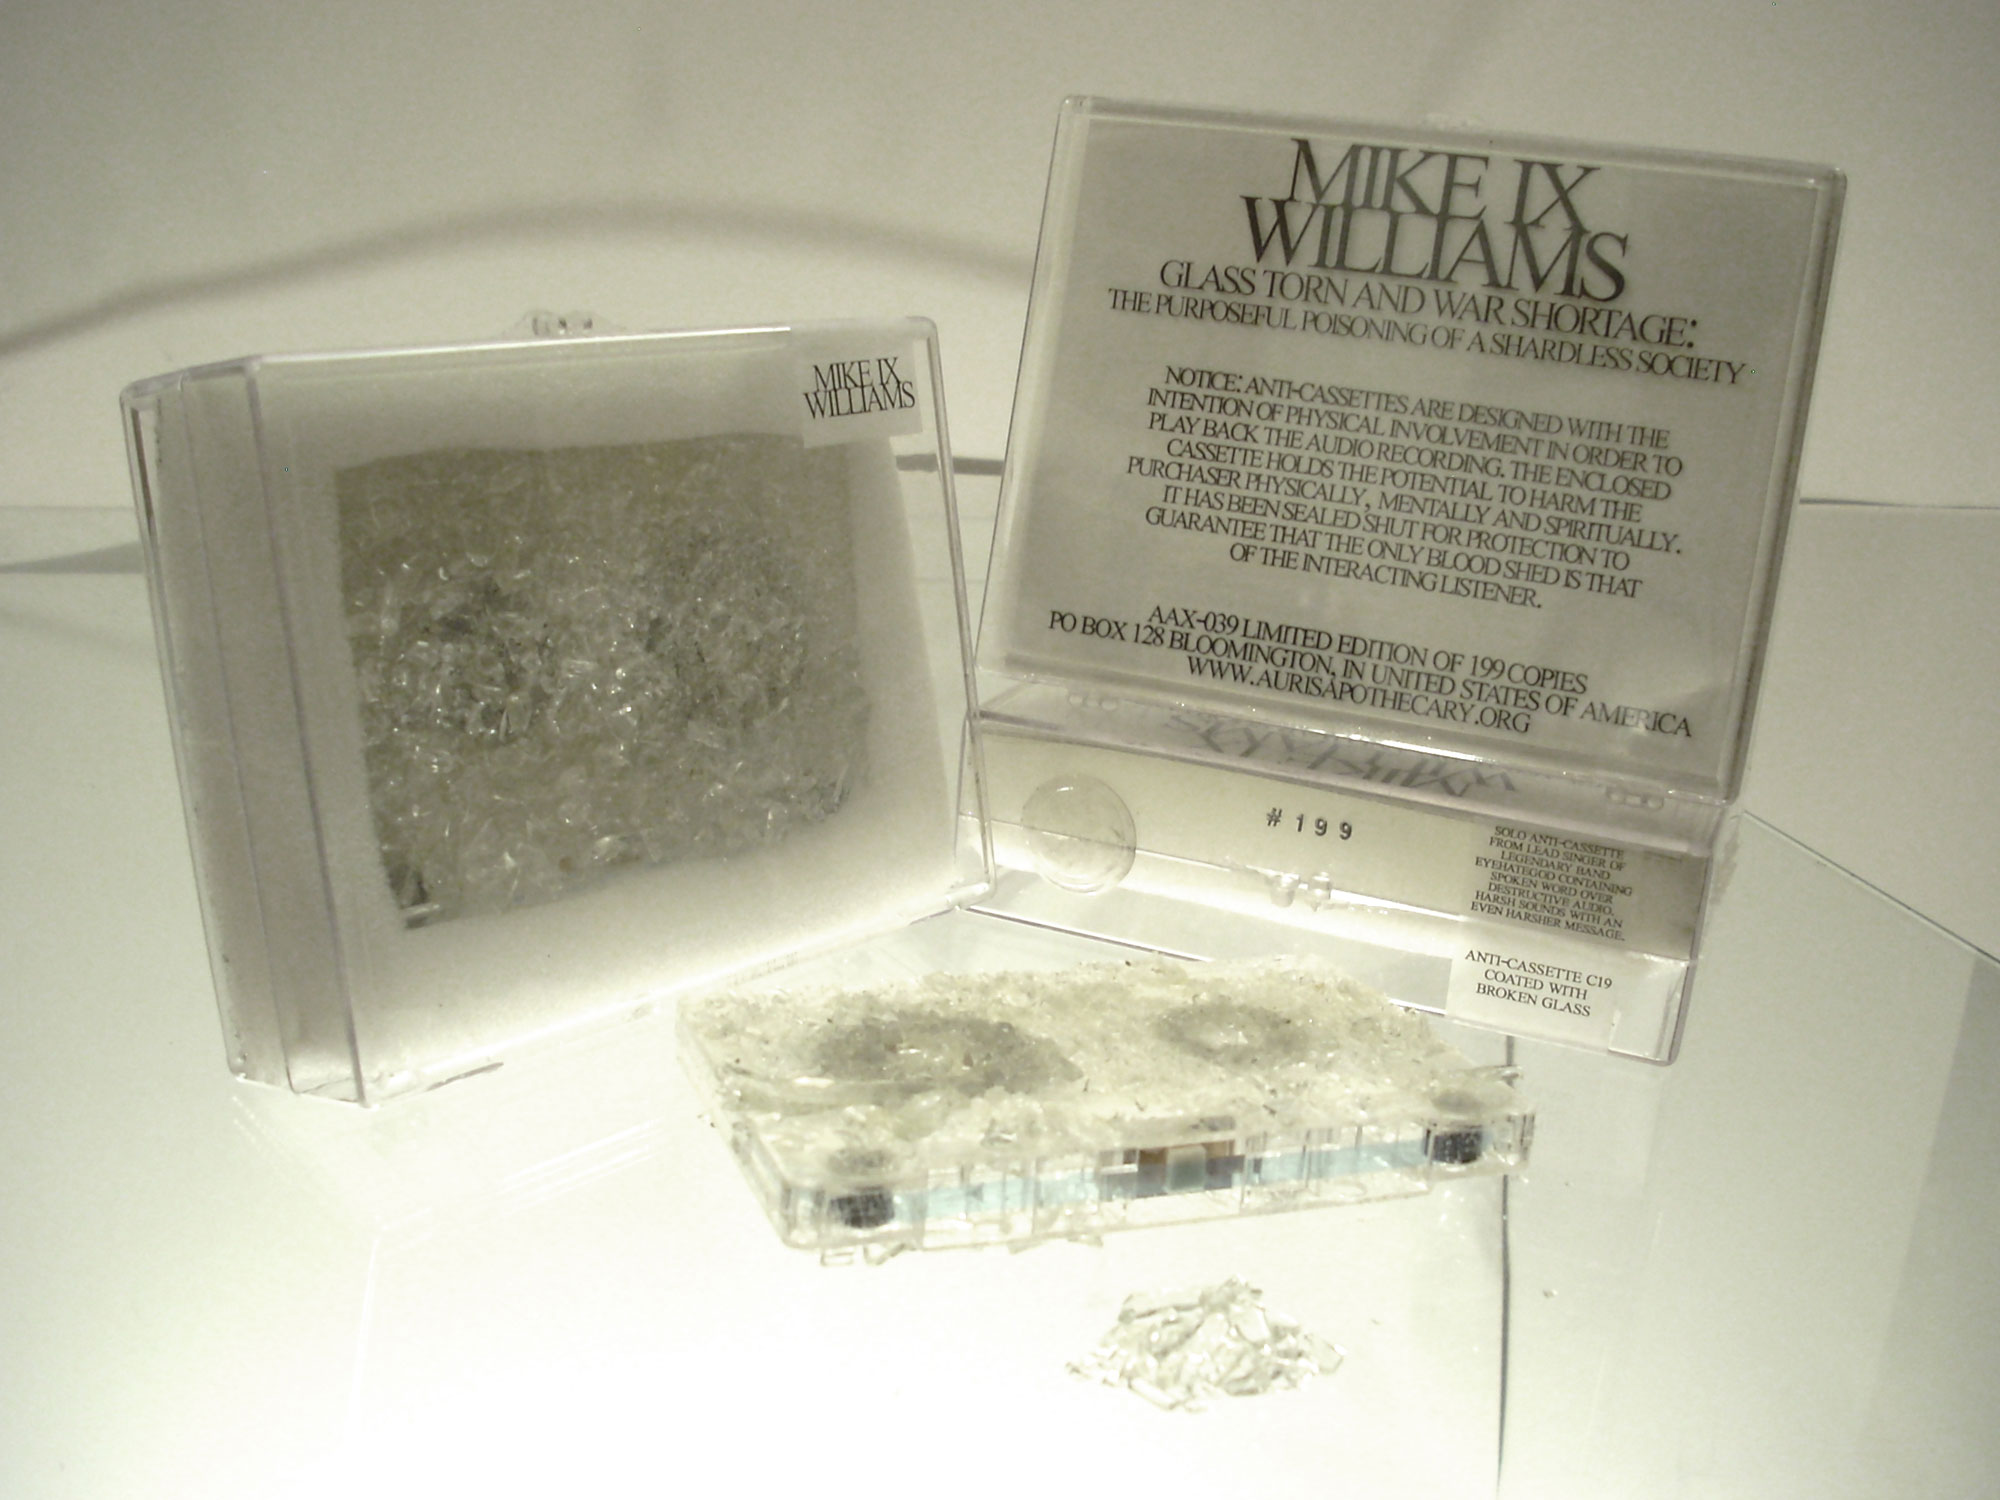 Mike IX Williams, Glass Torn and War Shortage : The Purposeful Poisoning of a Shardless Society, 2011